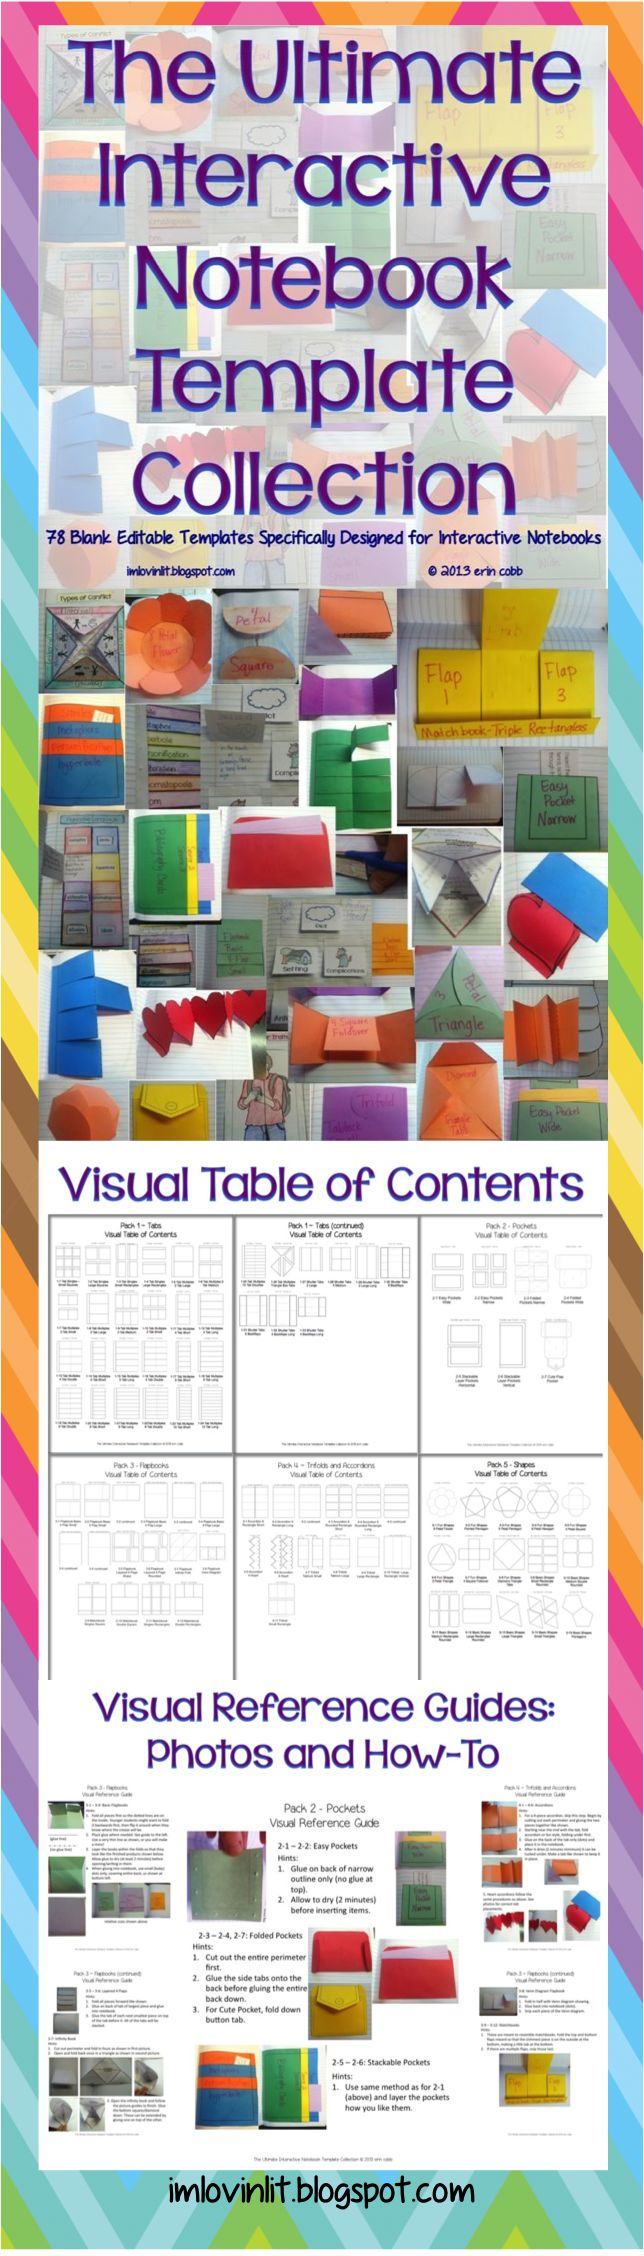 78 blank templates specially designed to work in your interactive notebooks. These templates also work well in lapbooks. YES YOU CAN! You may use these templates in your own TpT products. You will receive these files in 2 formats – a PDF version ready to print and a PowerPoint version ready to edit. $6 TpT